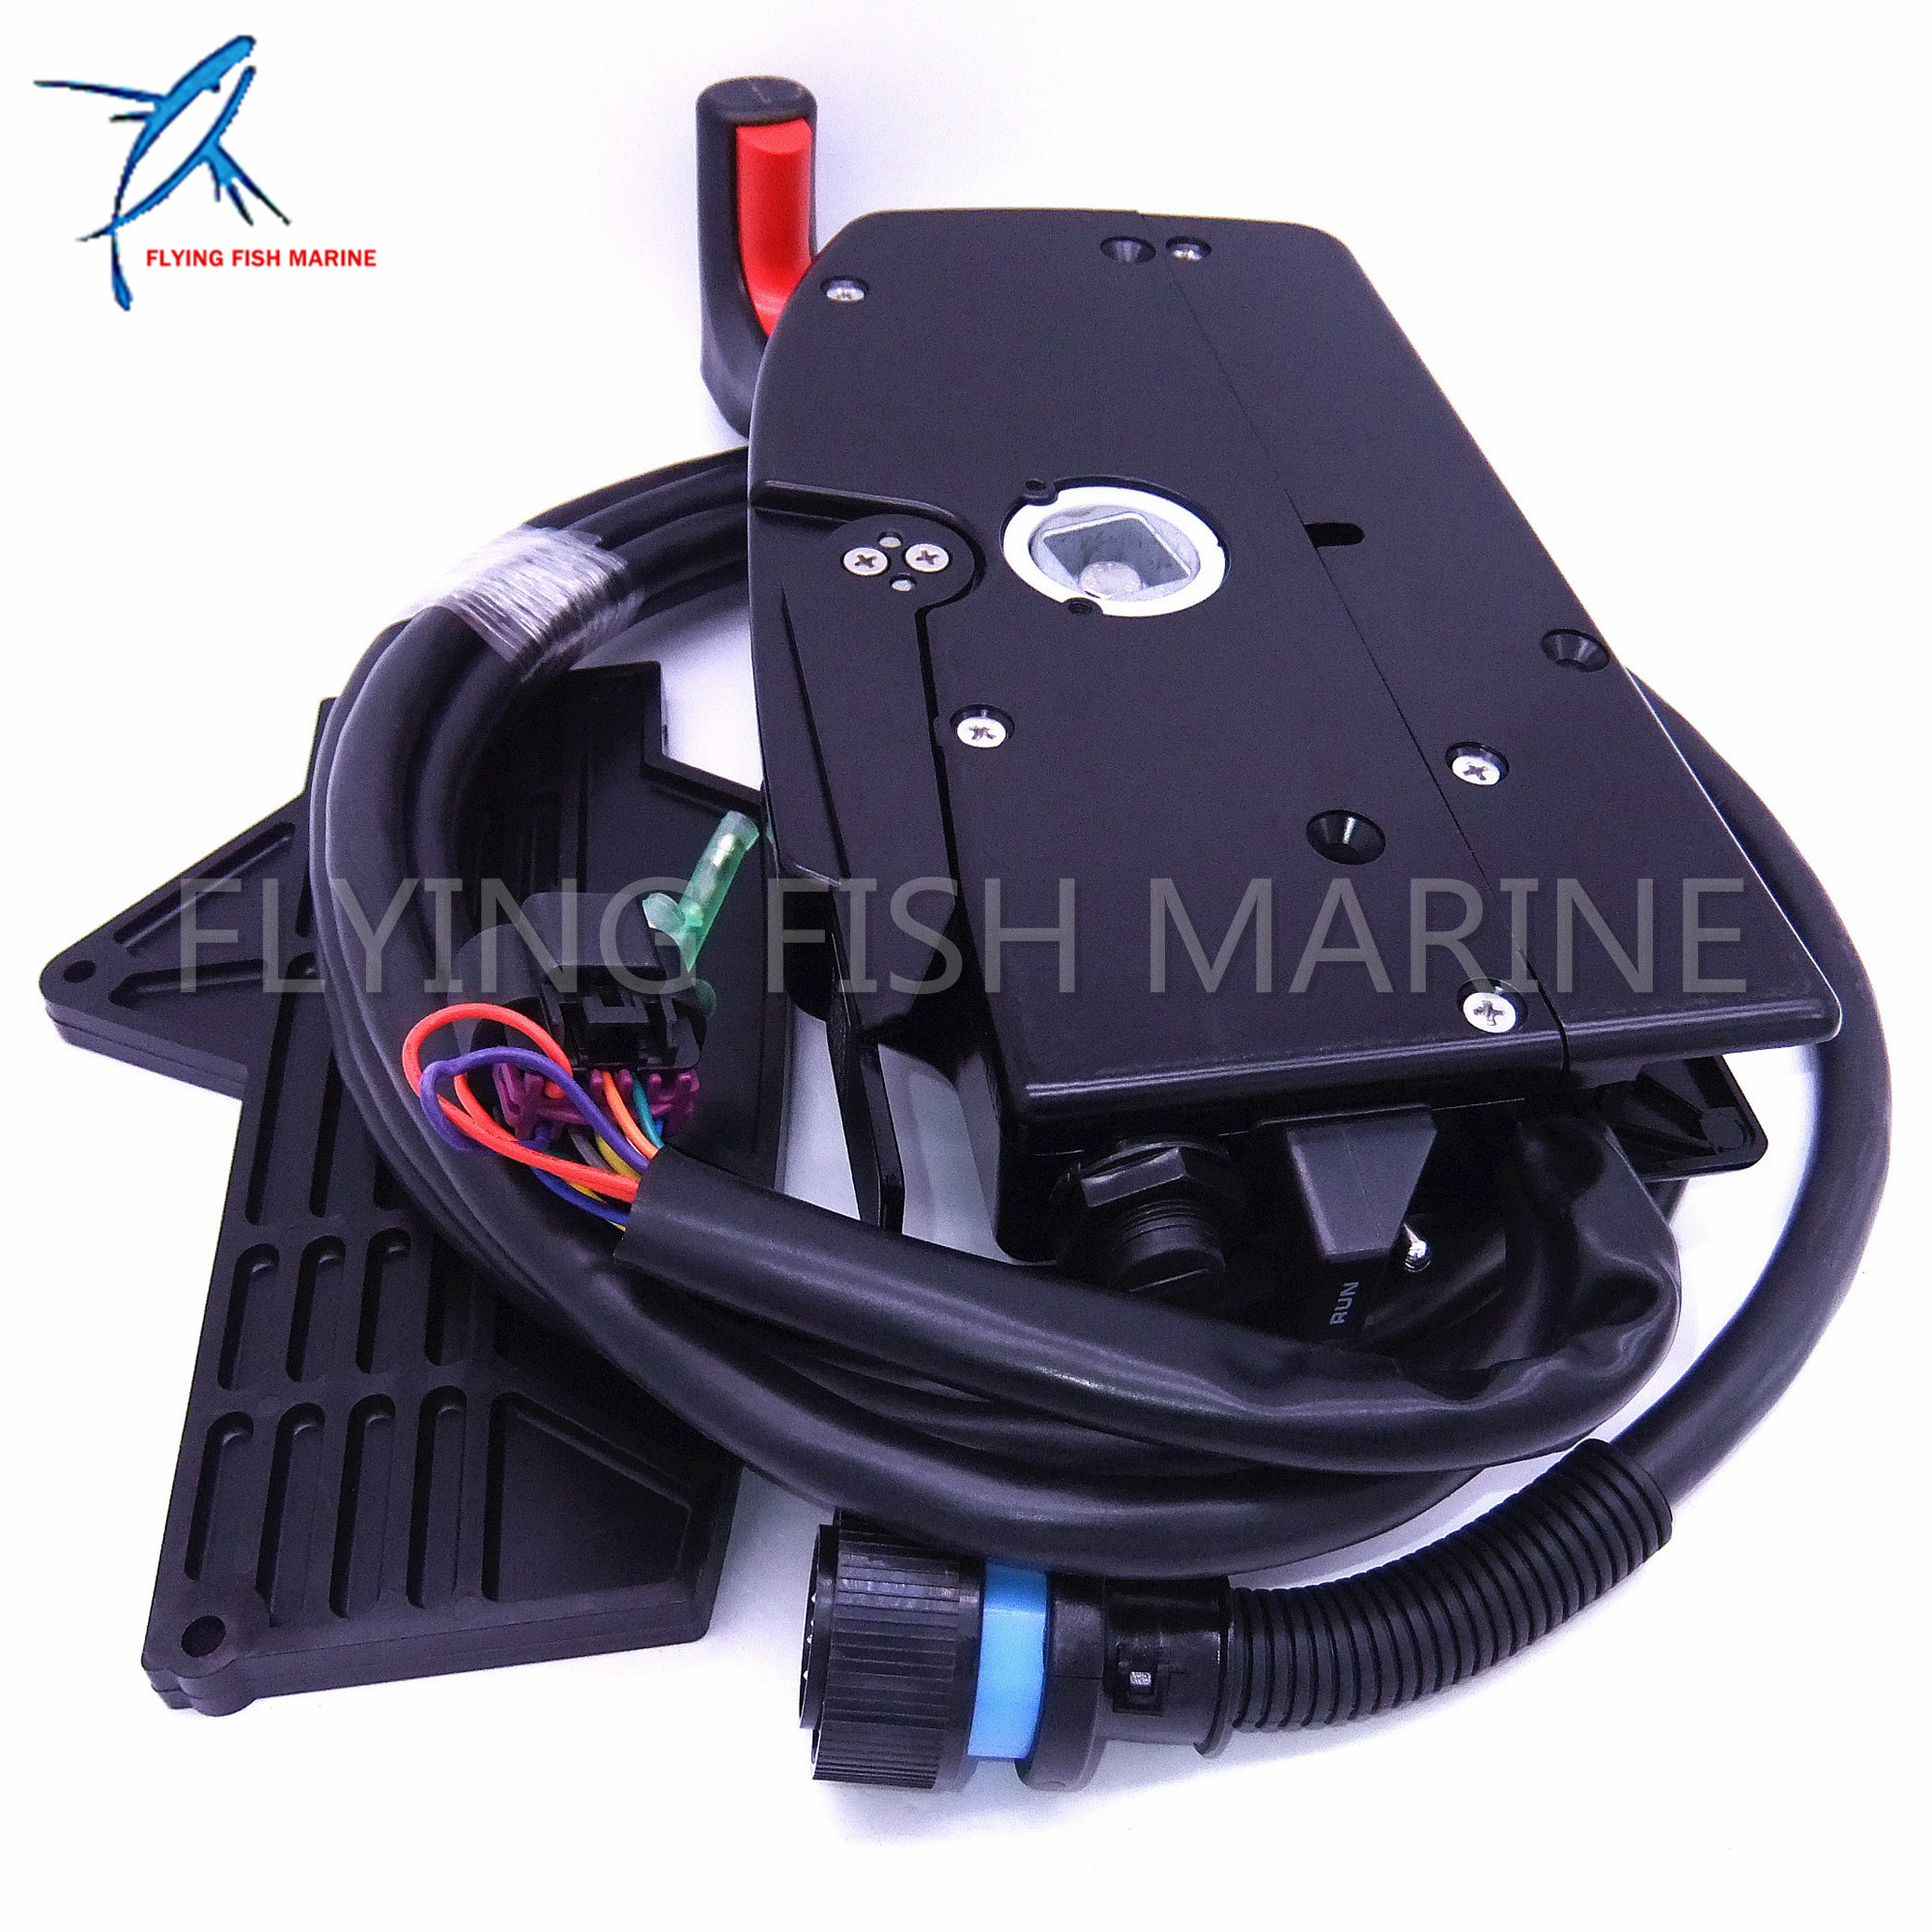 881170a13 Boat Motor Side Mount Remote Control Box With 14 Pin For. 2006newer 25300hp 4stroke Mercury Any Engine That Has The 14 Pin Connector From Primary Harness Gen I Cables Are Required With This Control. Mercury. Mercury Outboard Engine Harness Adapter At Scoala.co